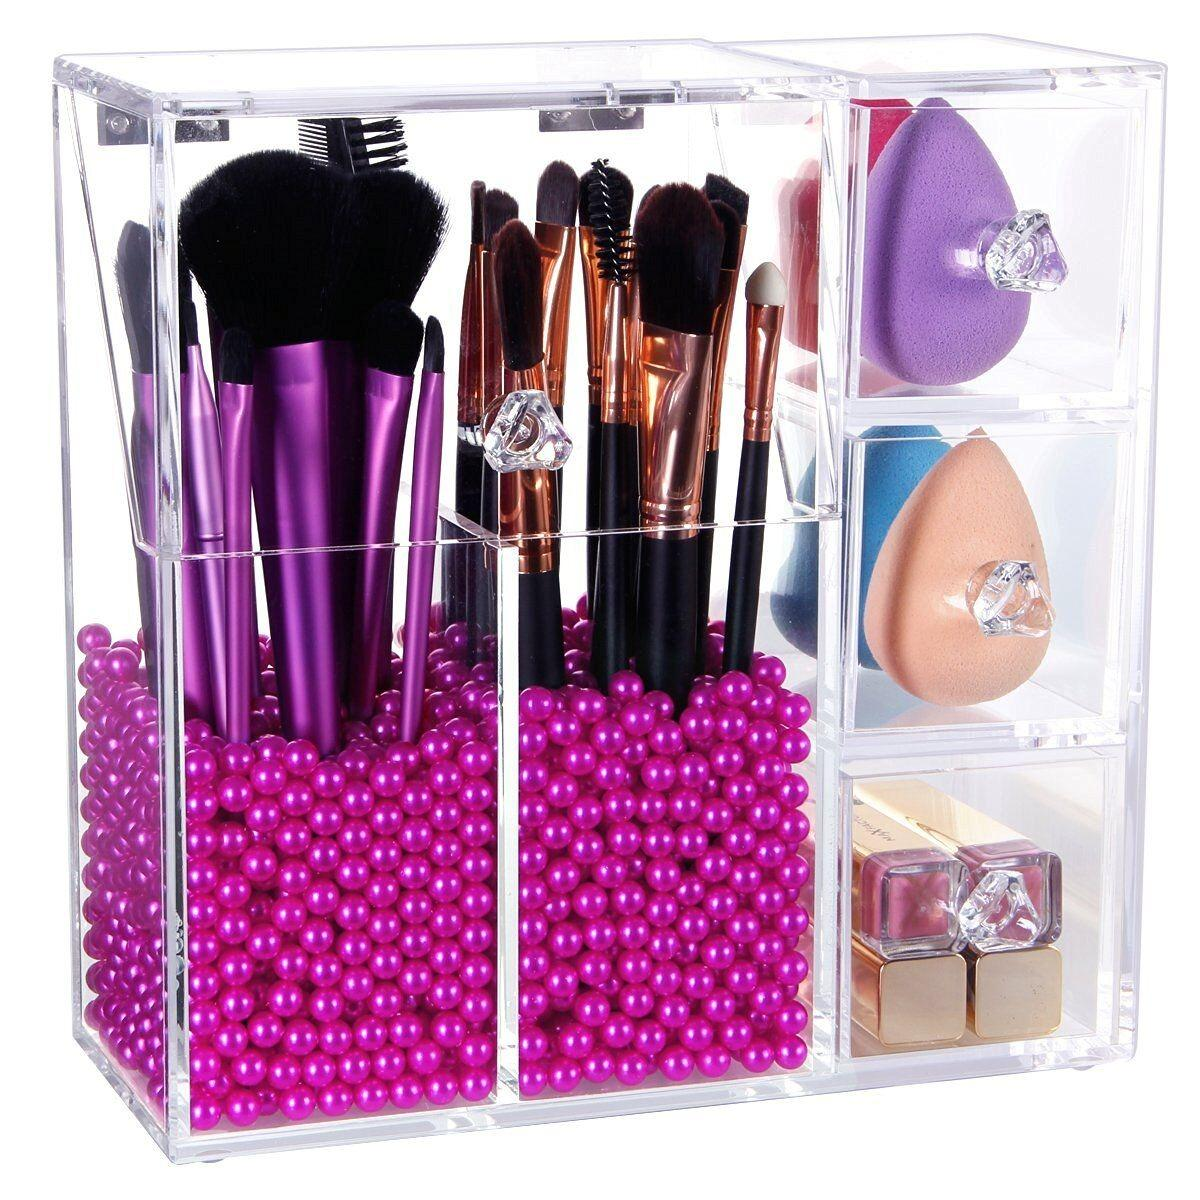 Xsential Clear Acrylic Make up Brush Organizer Tools Lipstick Nail ...